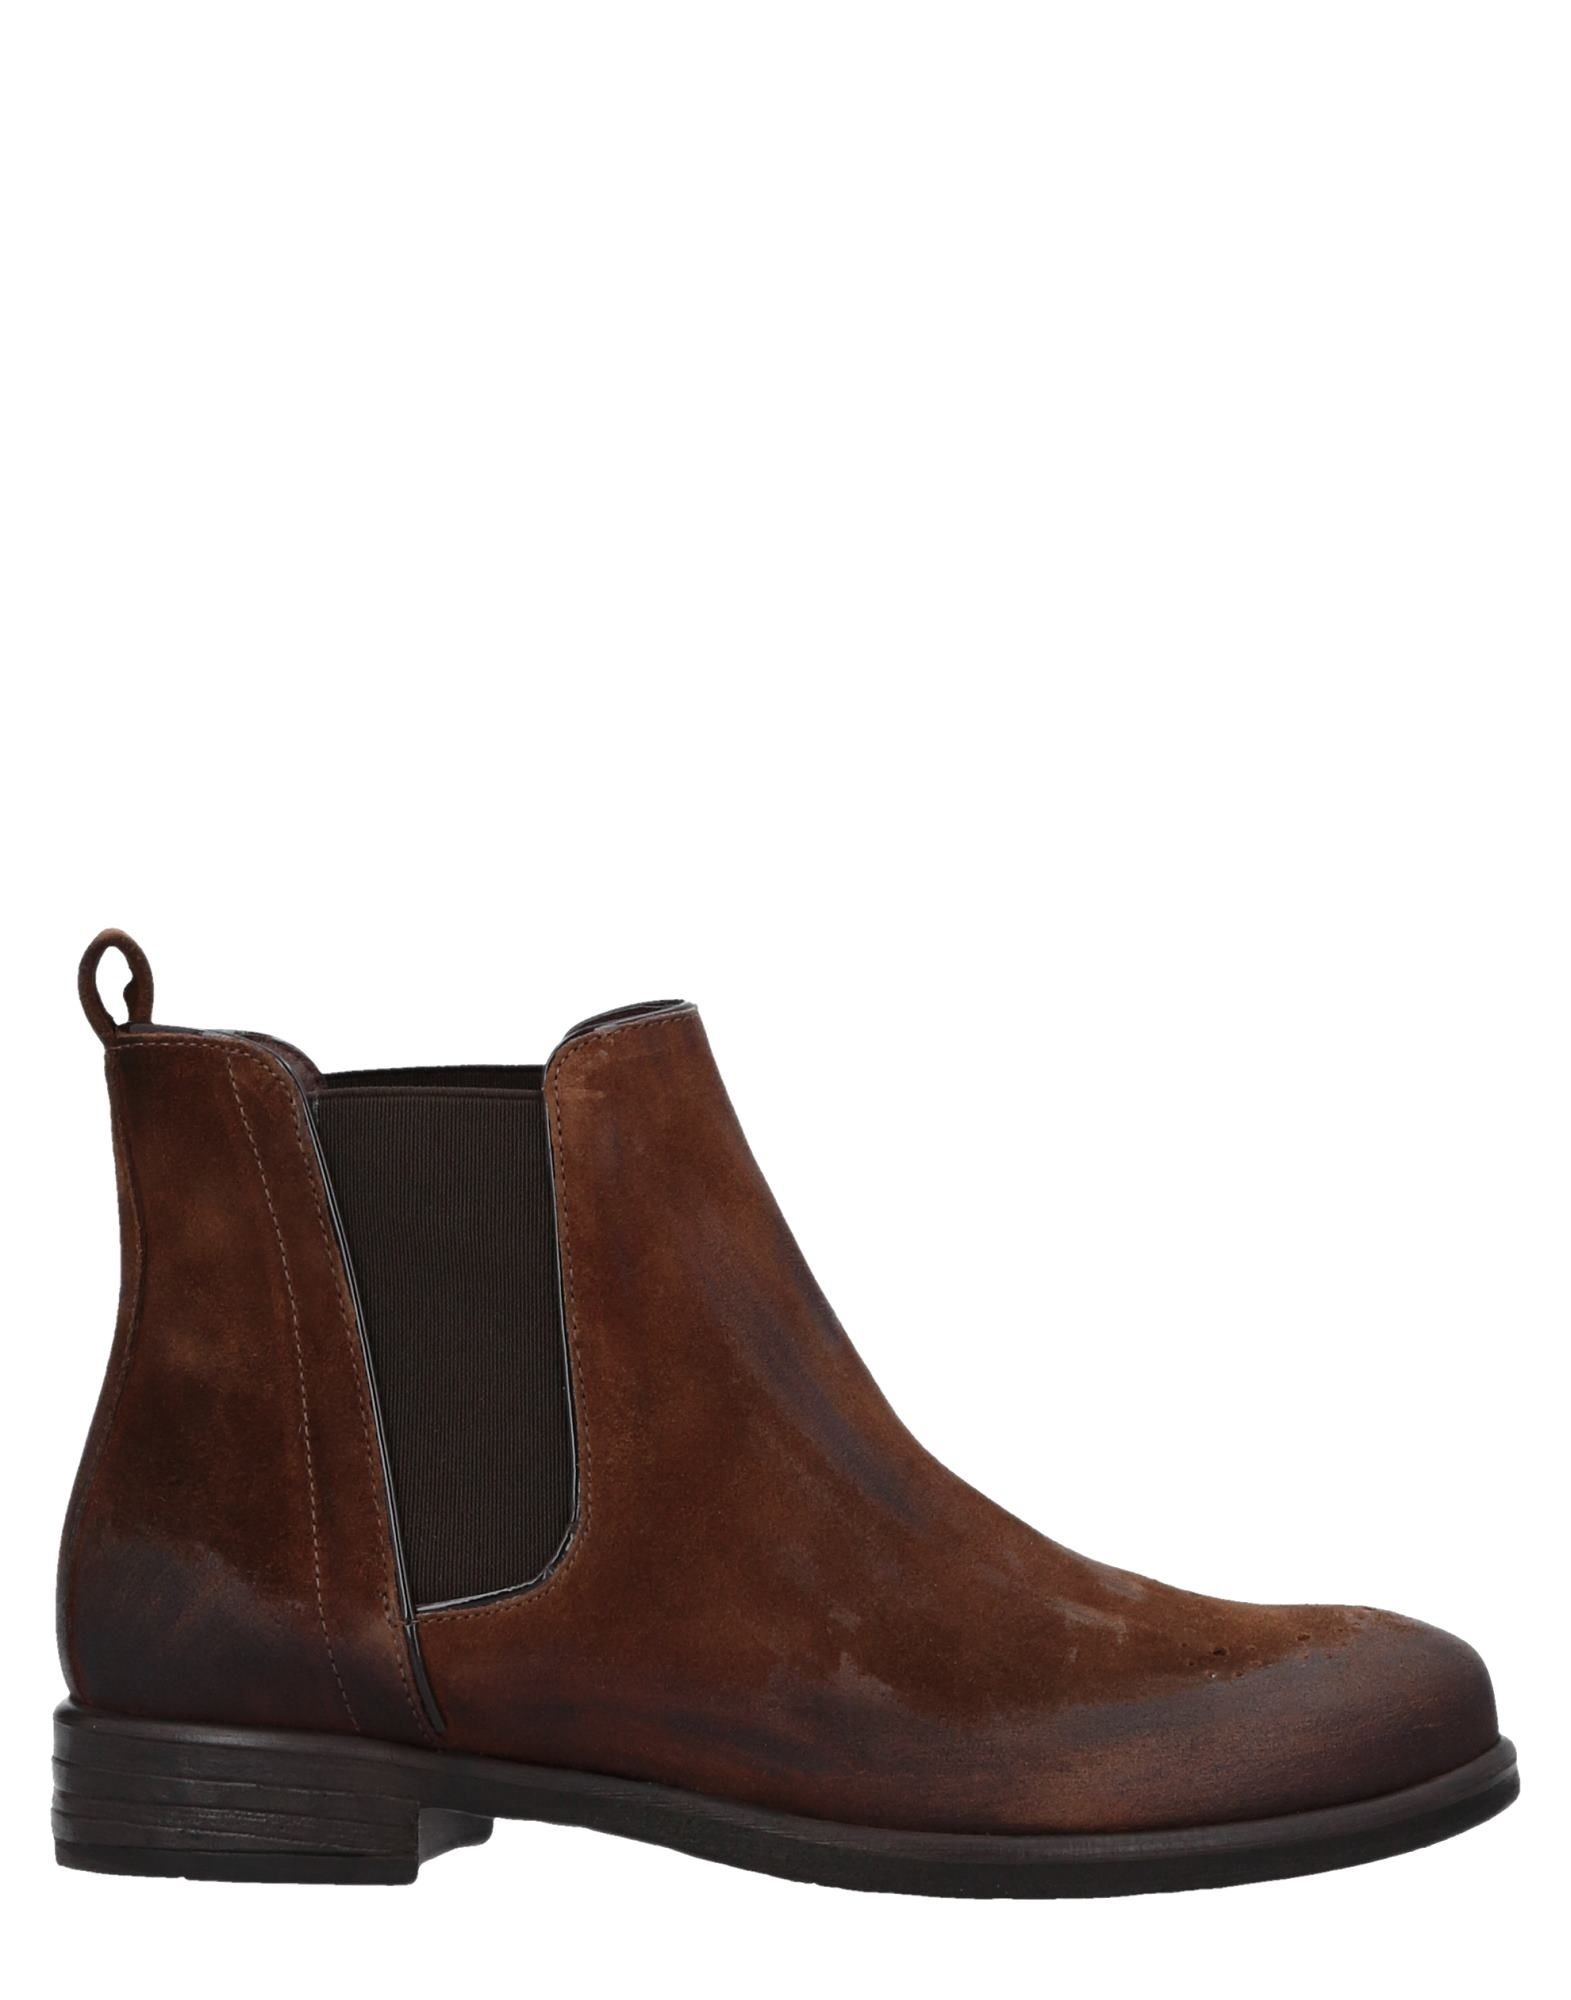 MANAS Ankle Boot in Brown